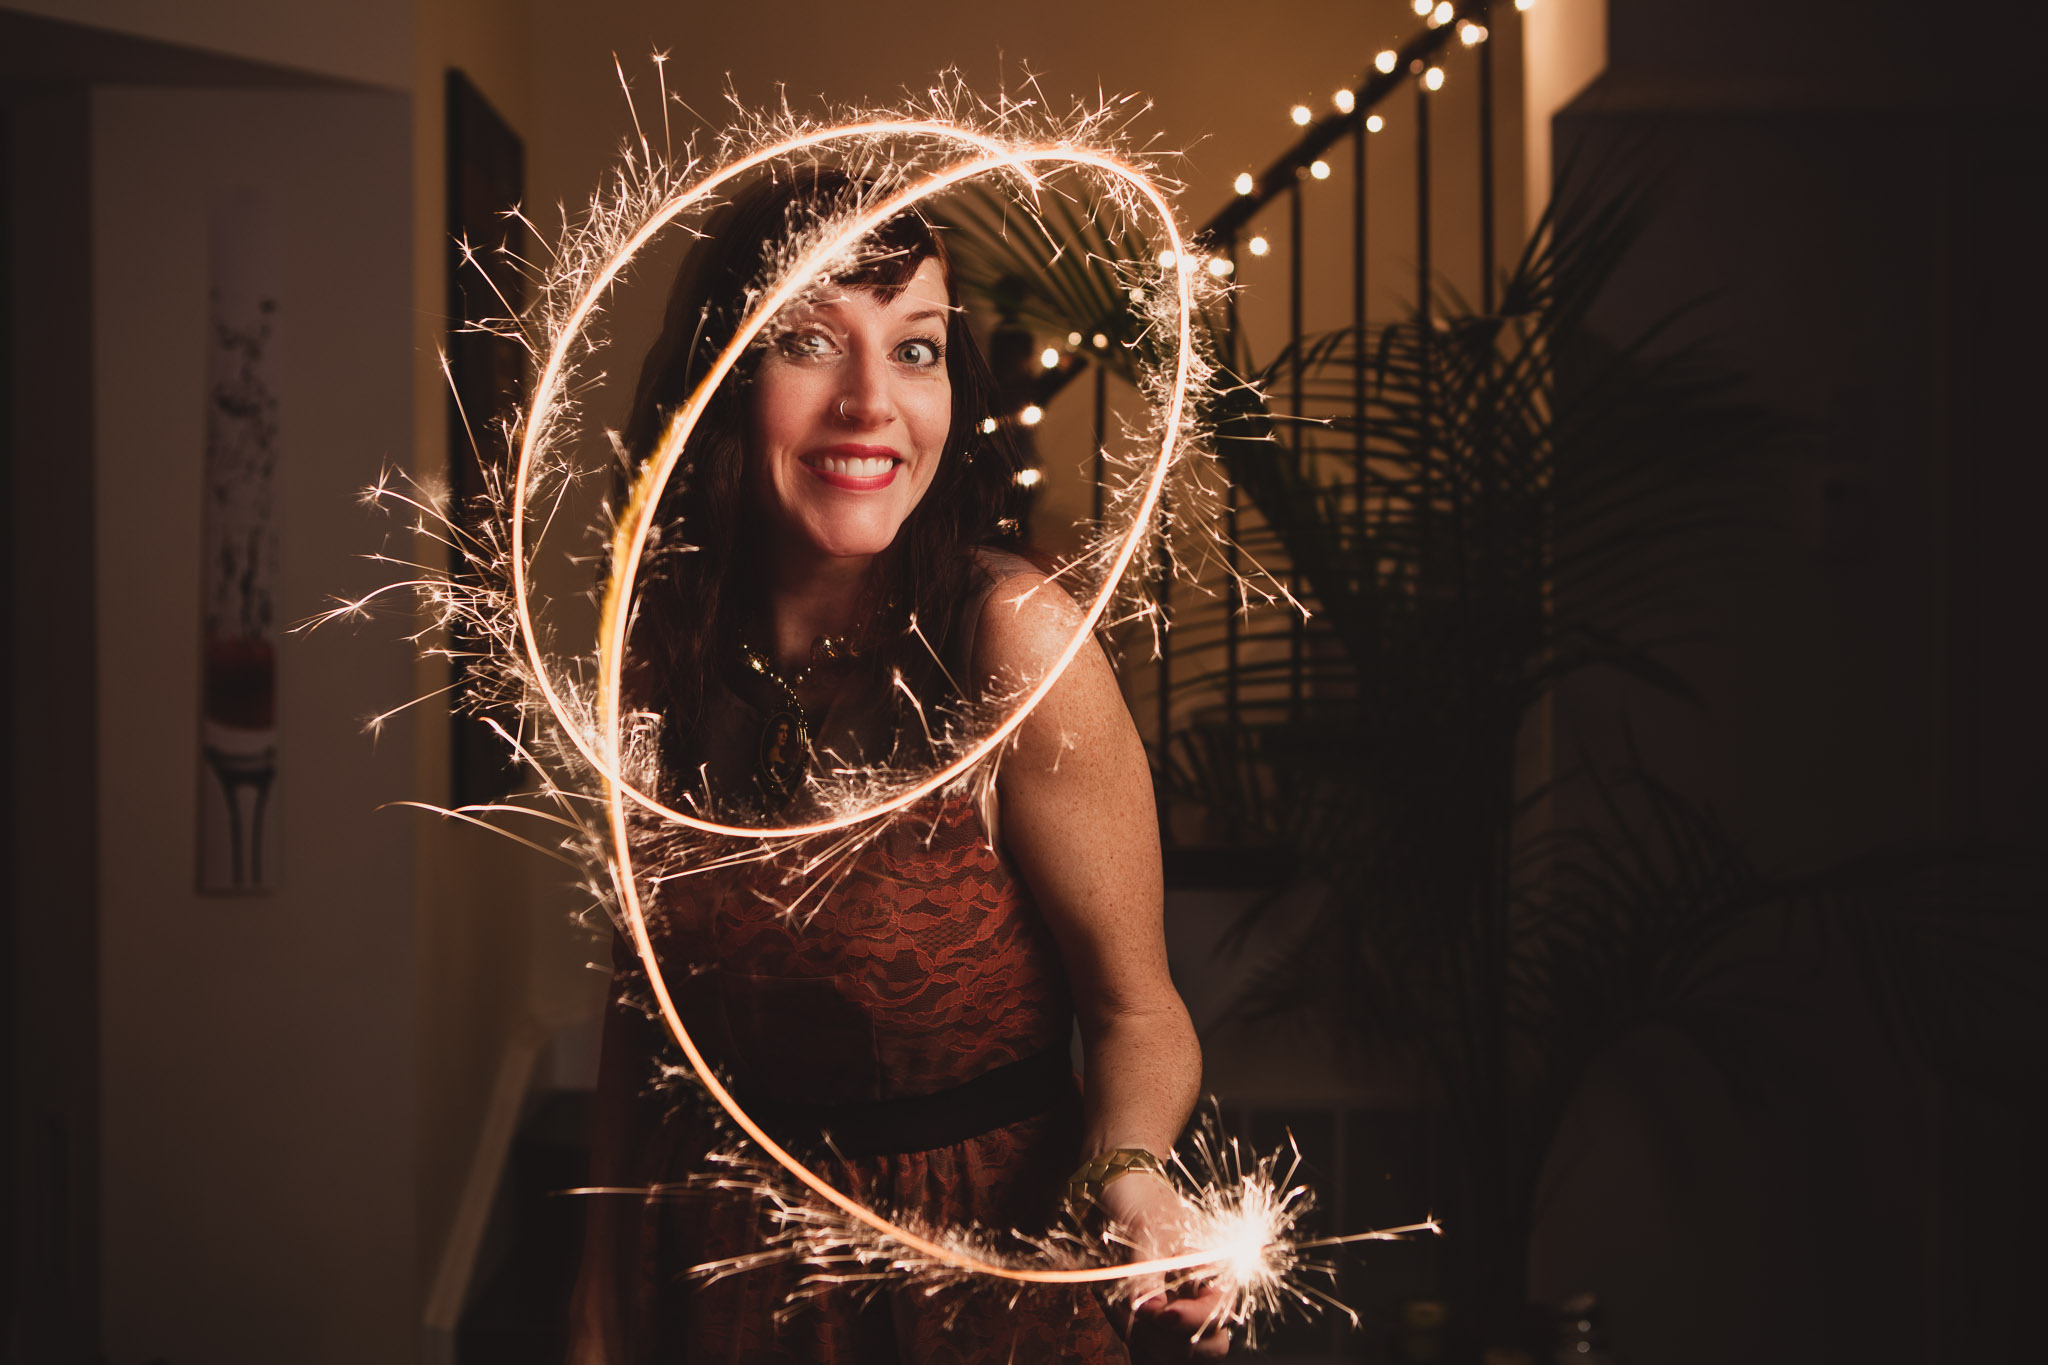 Cristy: pyrotechnical expert with the New Year's sparklers